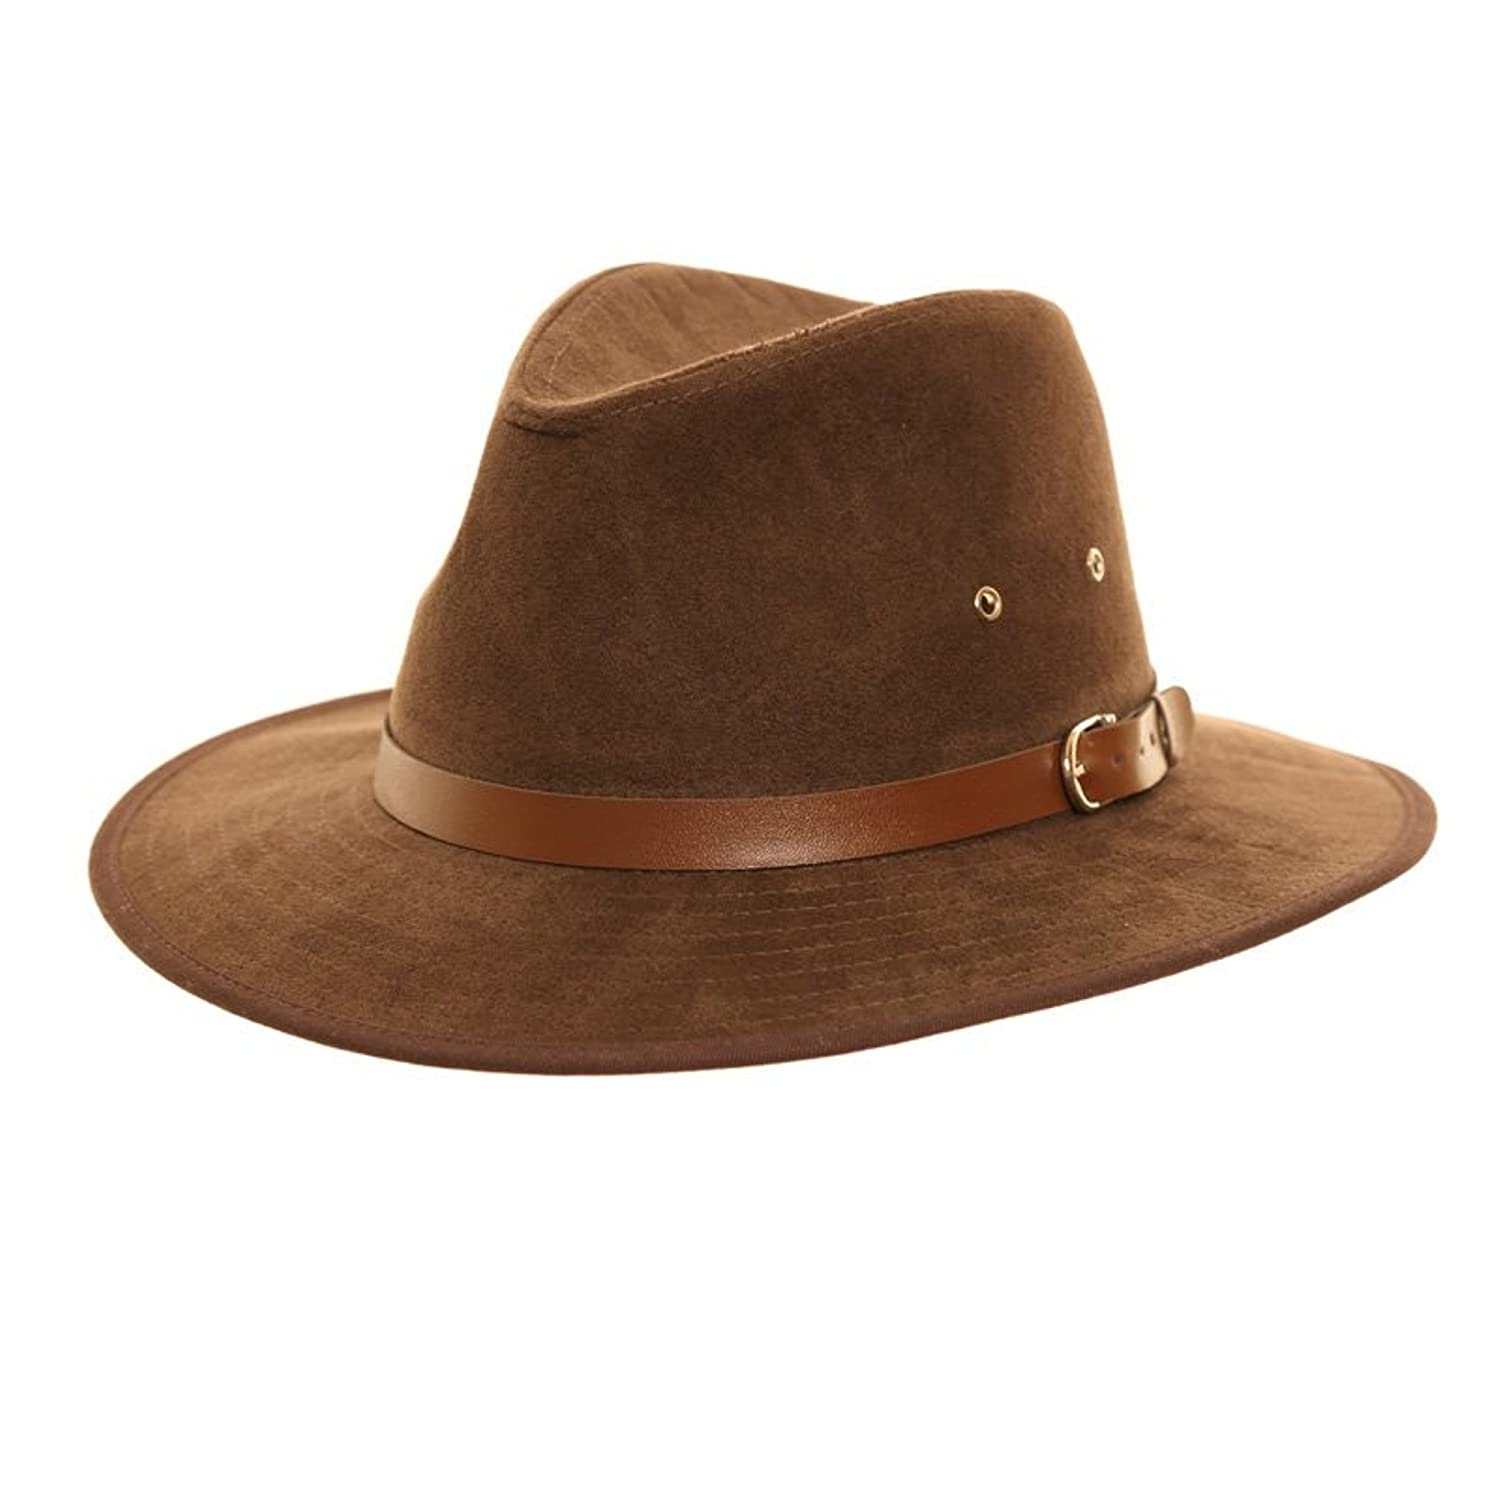 Unisex Faux Suede Summer Panama Fedora Felt Trilby Hat With Wider Brim and Belt Band